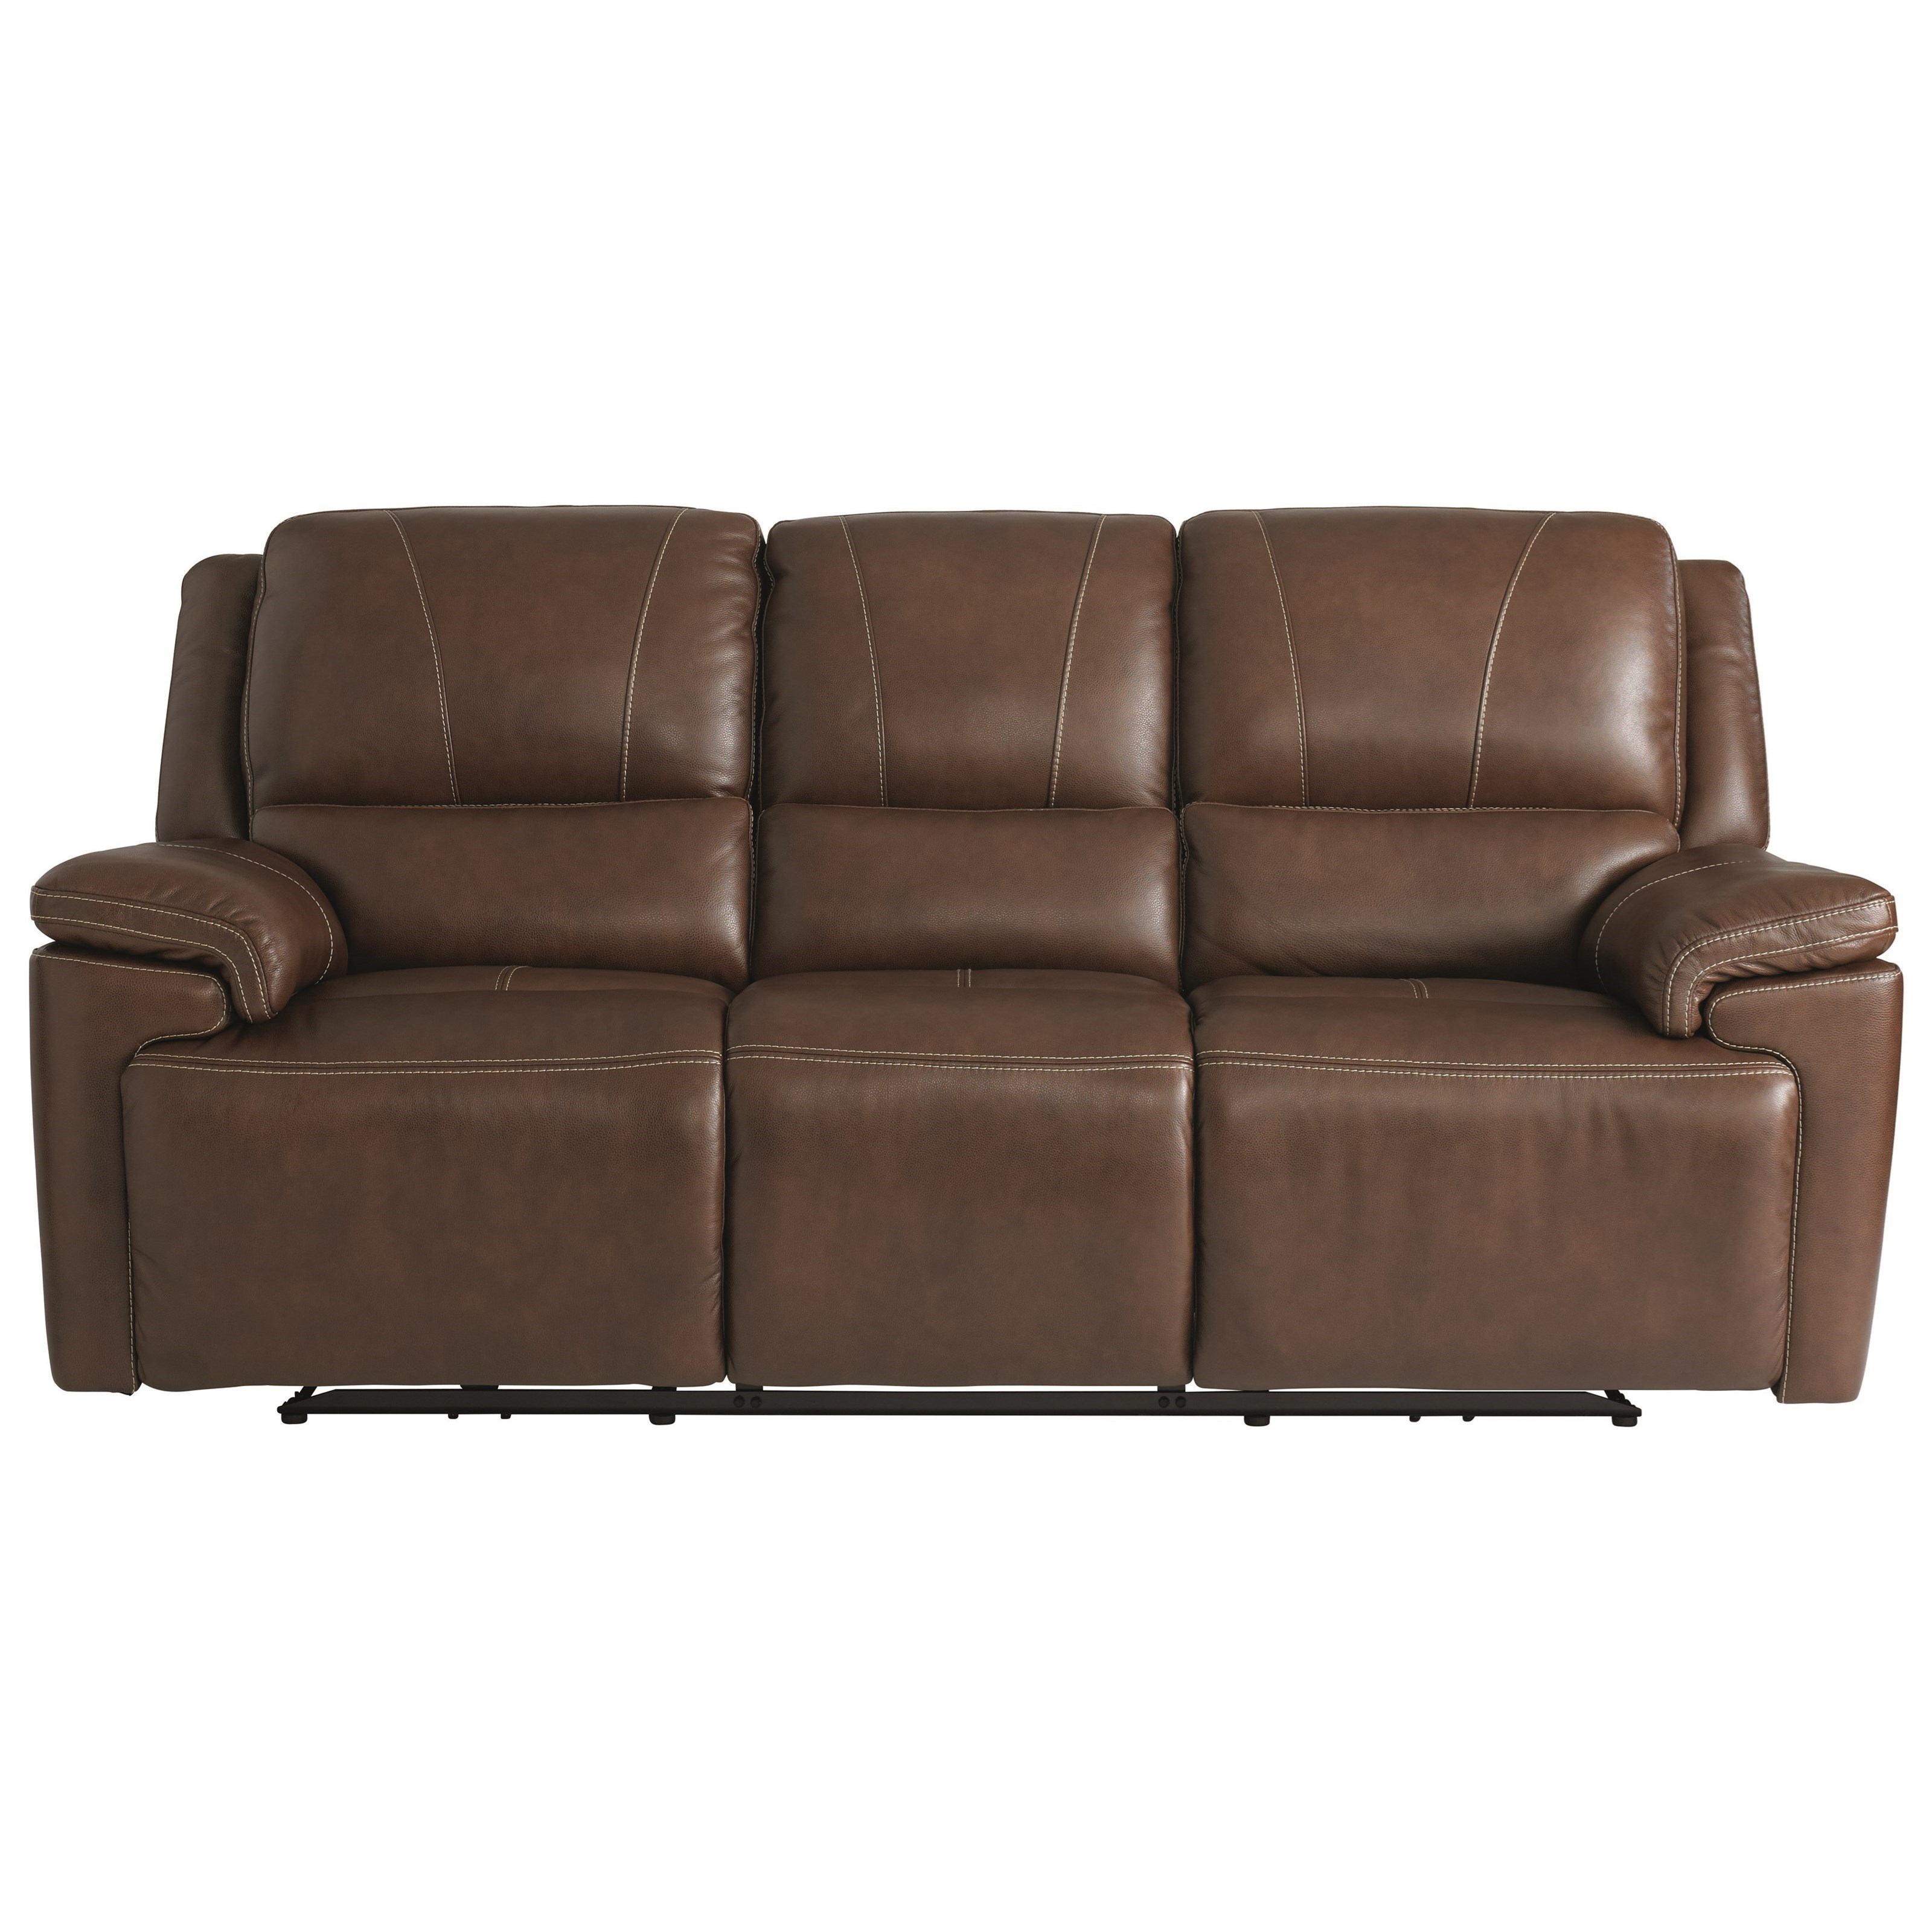 Bassett Club Level Colton 3733 P62x Casual Power Reclining Sofa With Adjustable Headrests And Usb Ports Hudson S Furniture Reclining Sofas